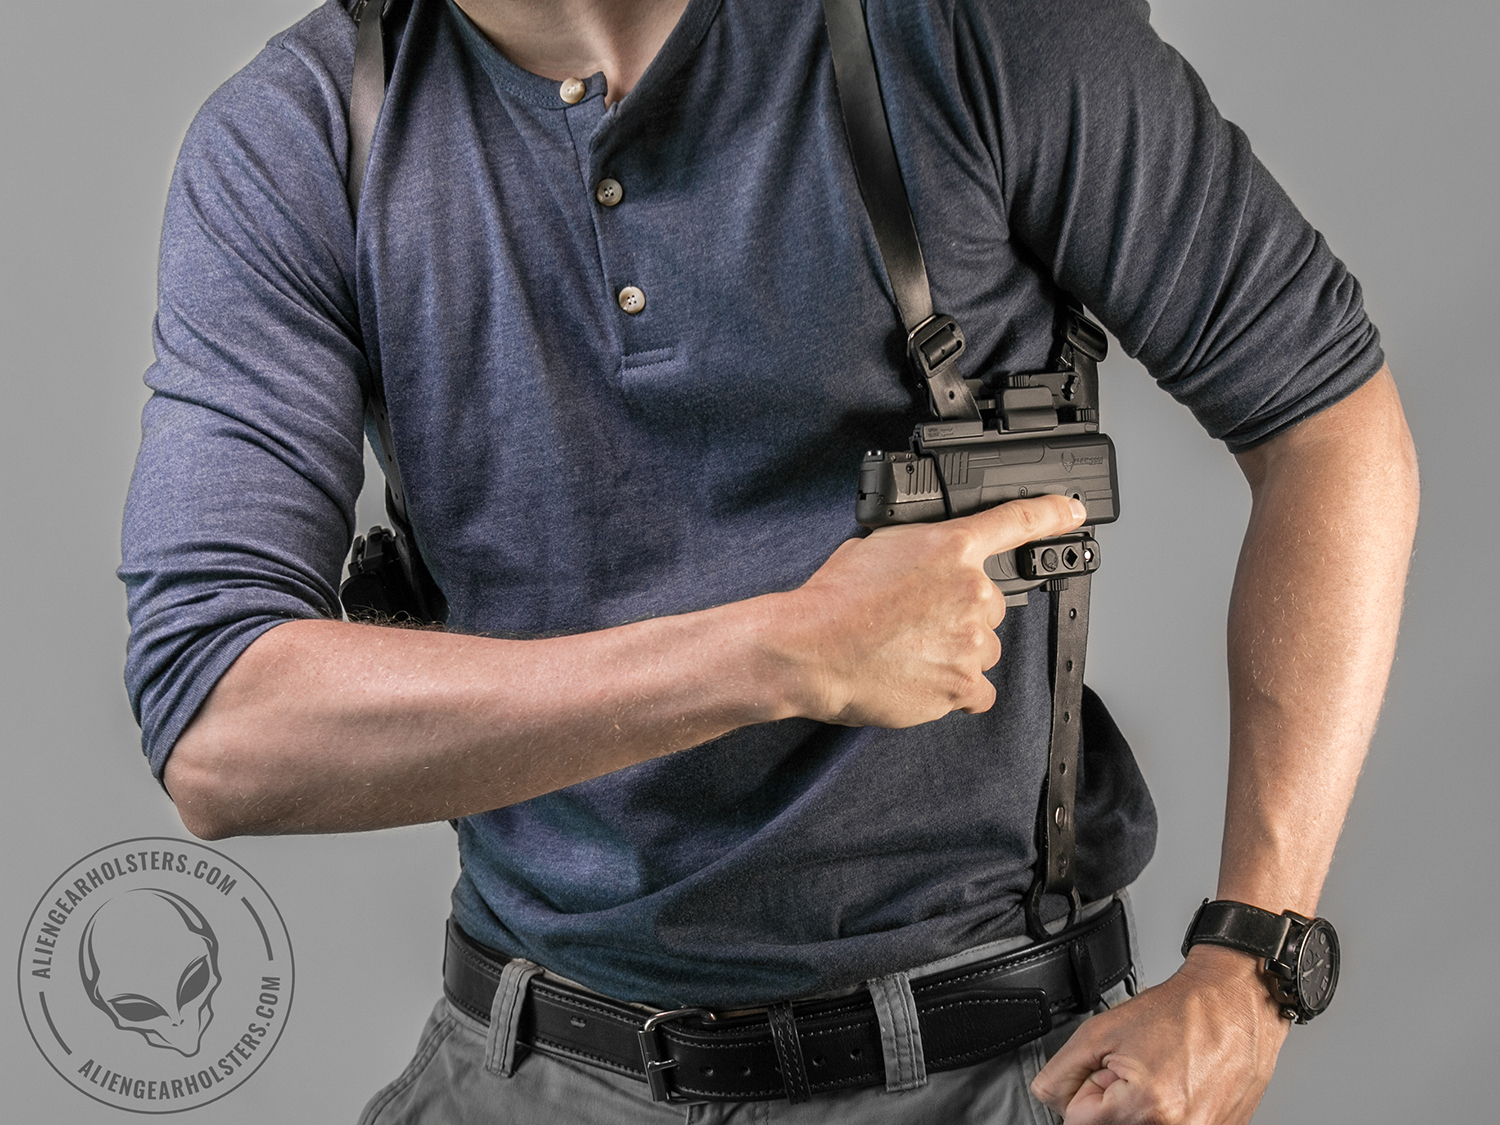 Alien Gear Holsters ShapeShift Shoulder Holster